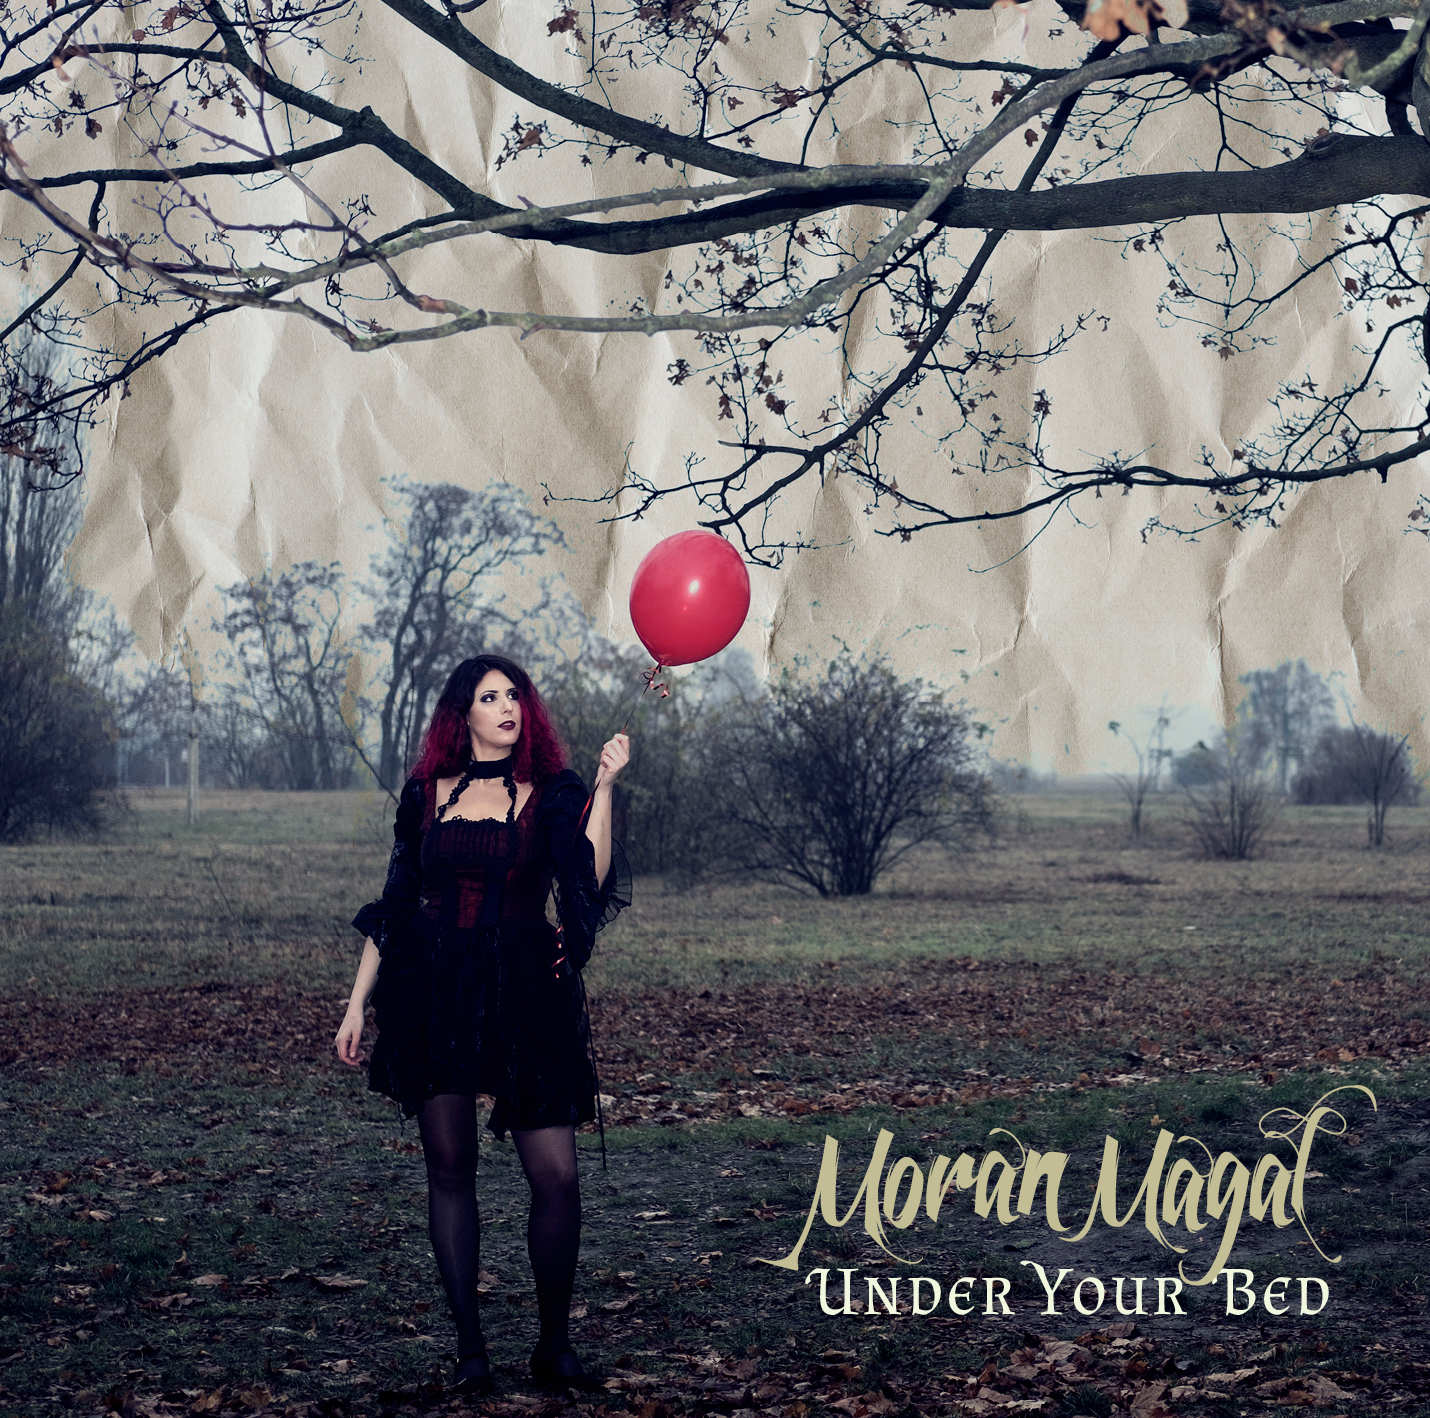 Moran Magal – Under Your Bed